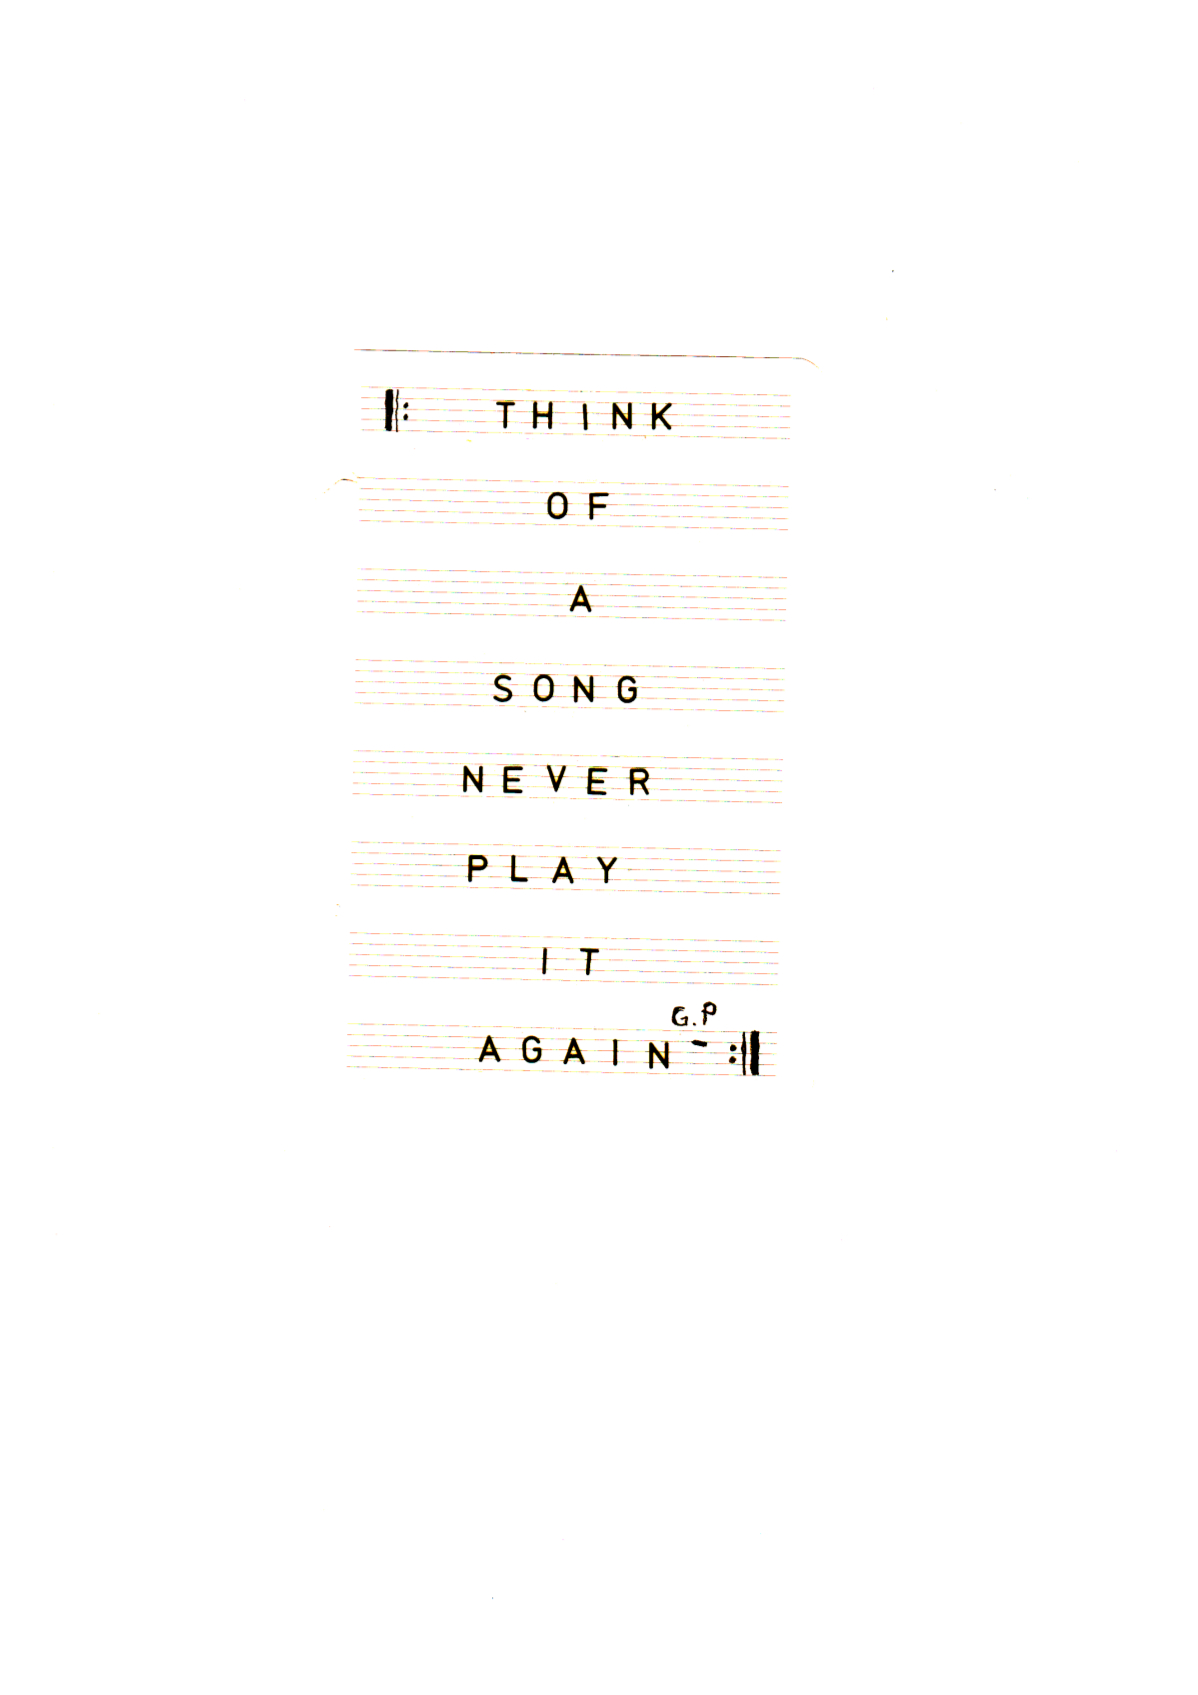 Think of a song